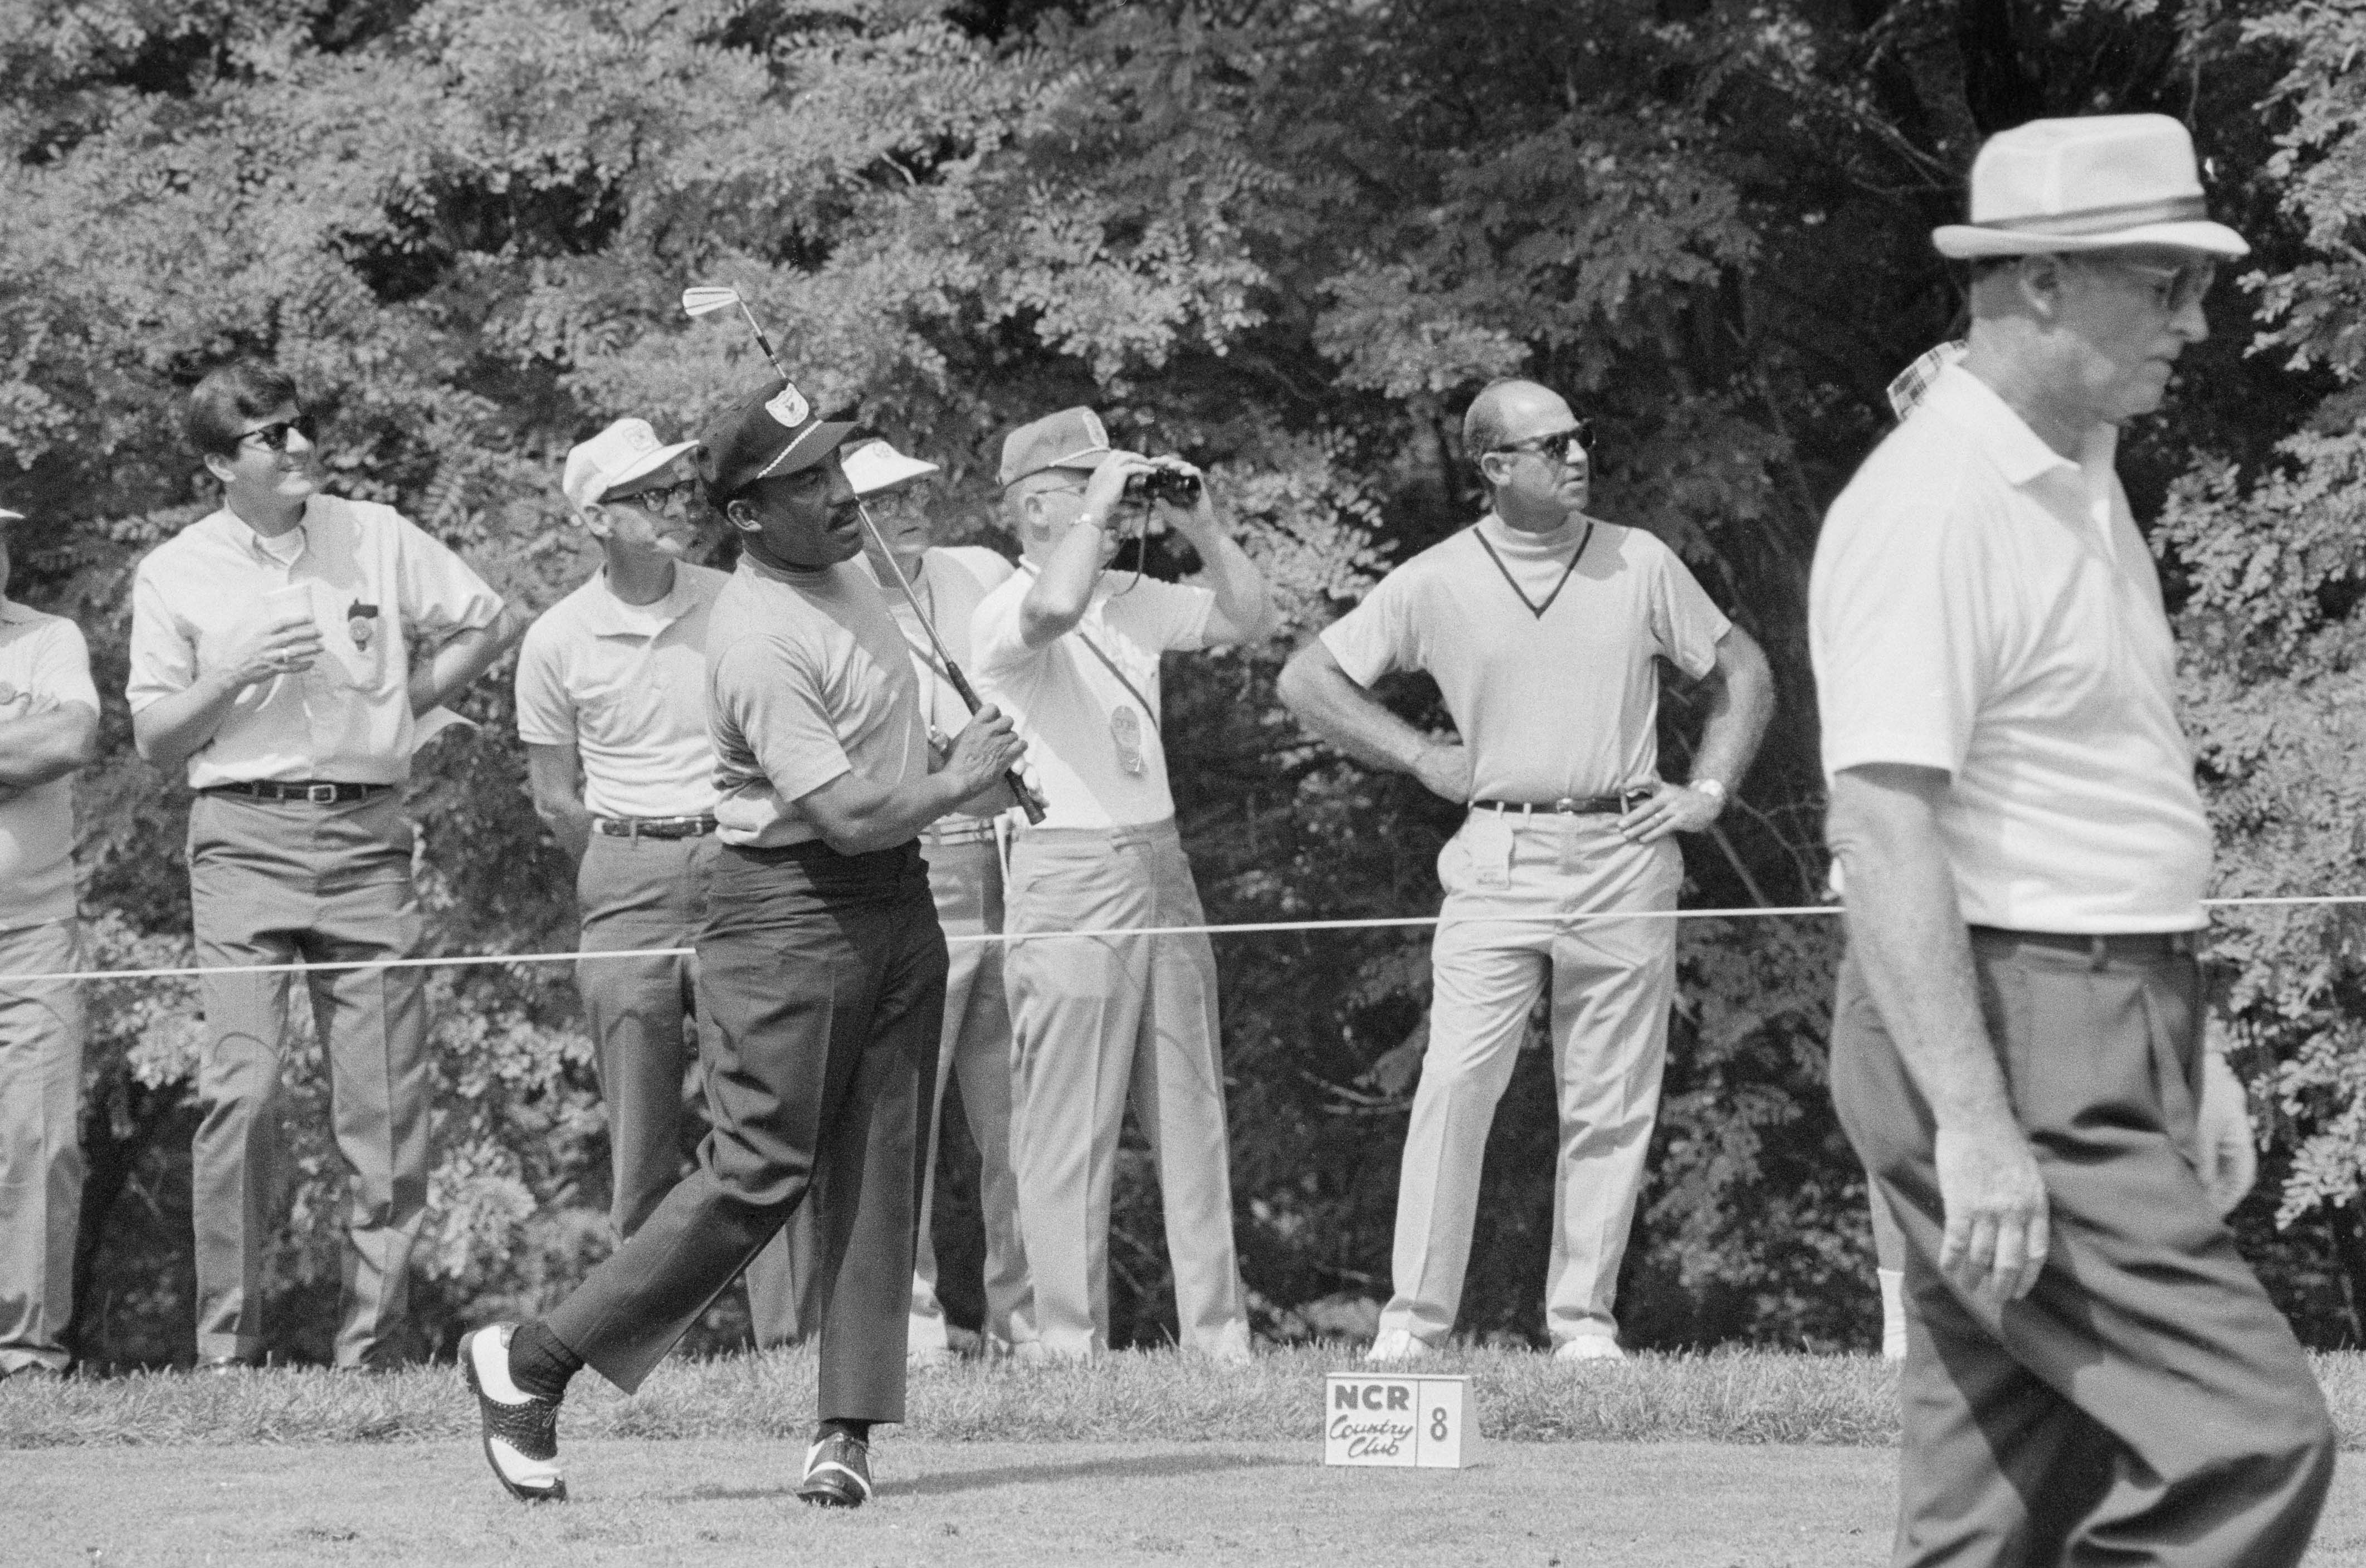 2. 1961: Sifford tees it up